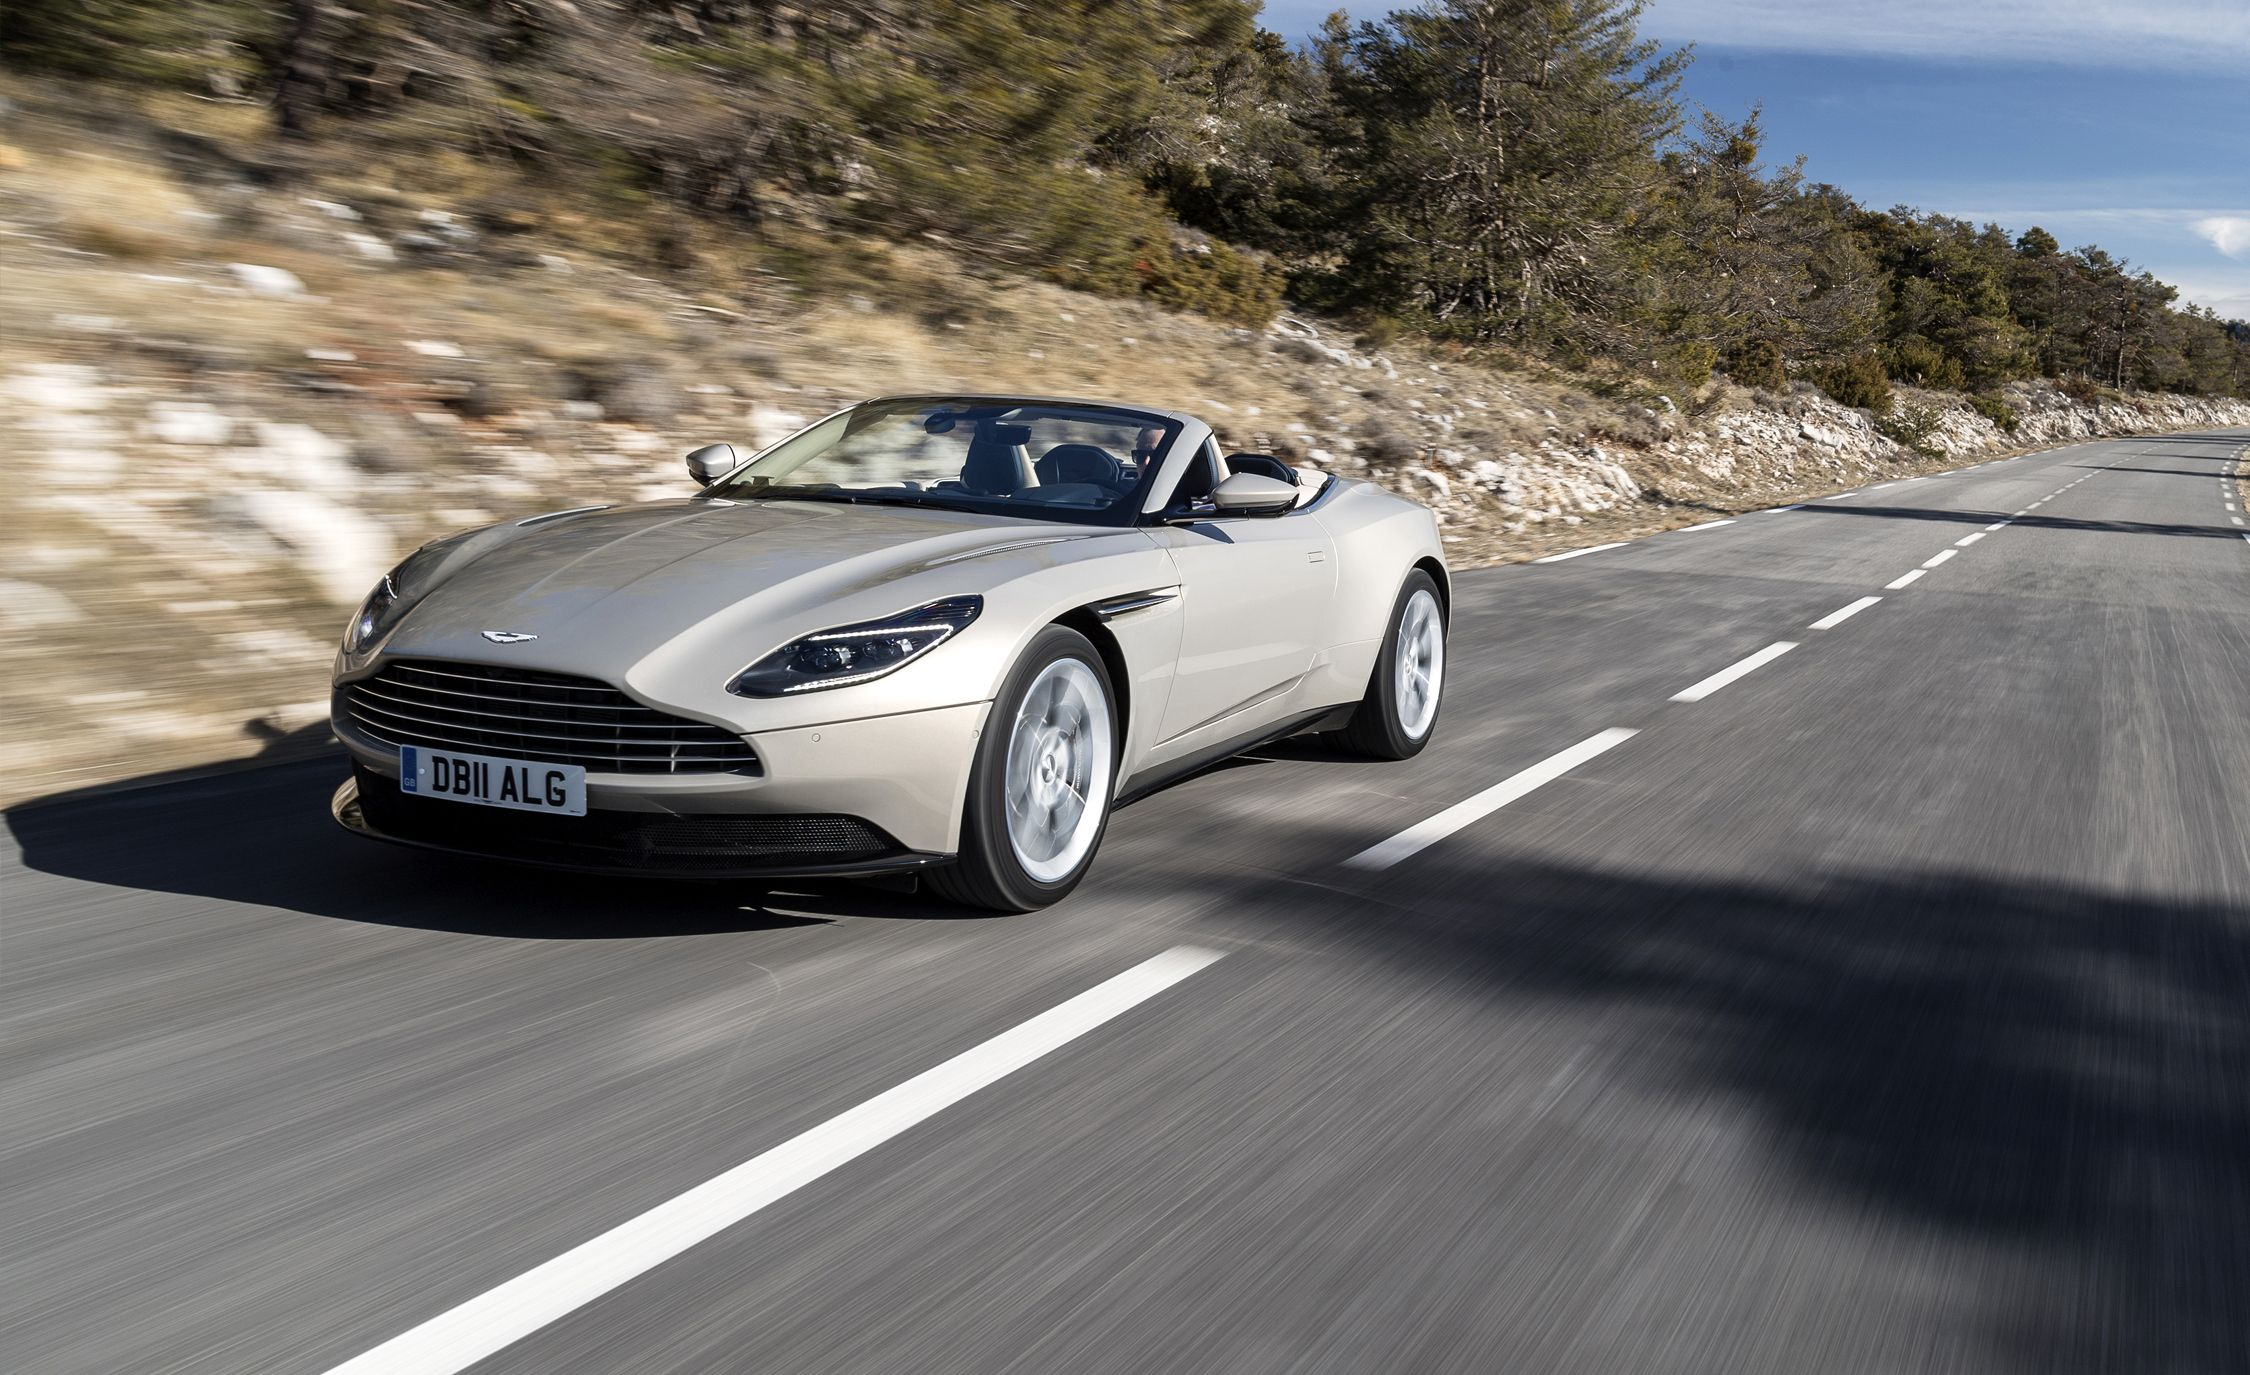 2019 Aston Martin Db11 Reviews Aston Martin Db11 Price Photos